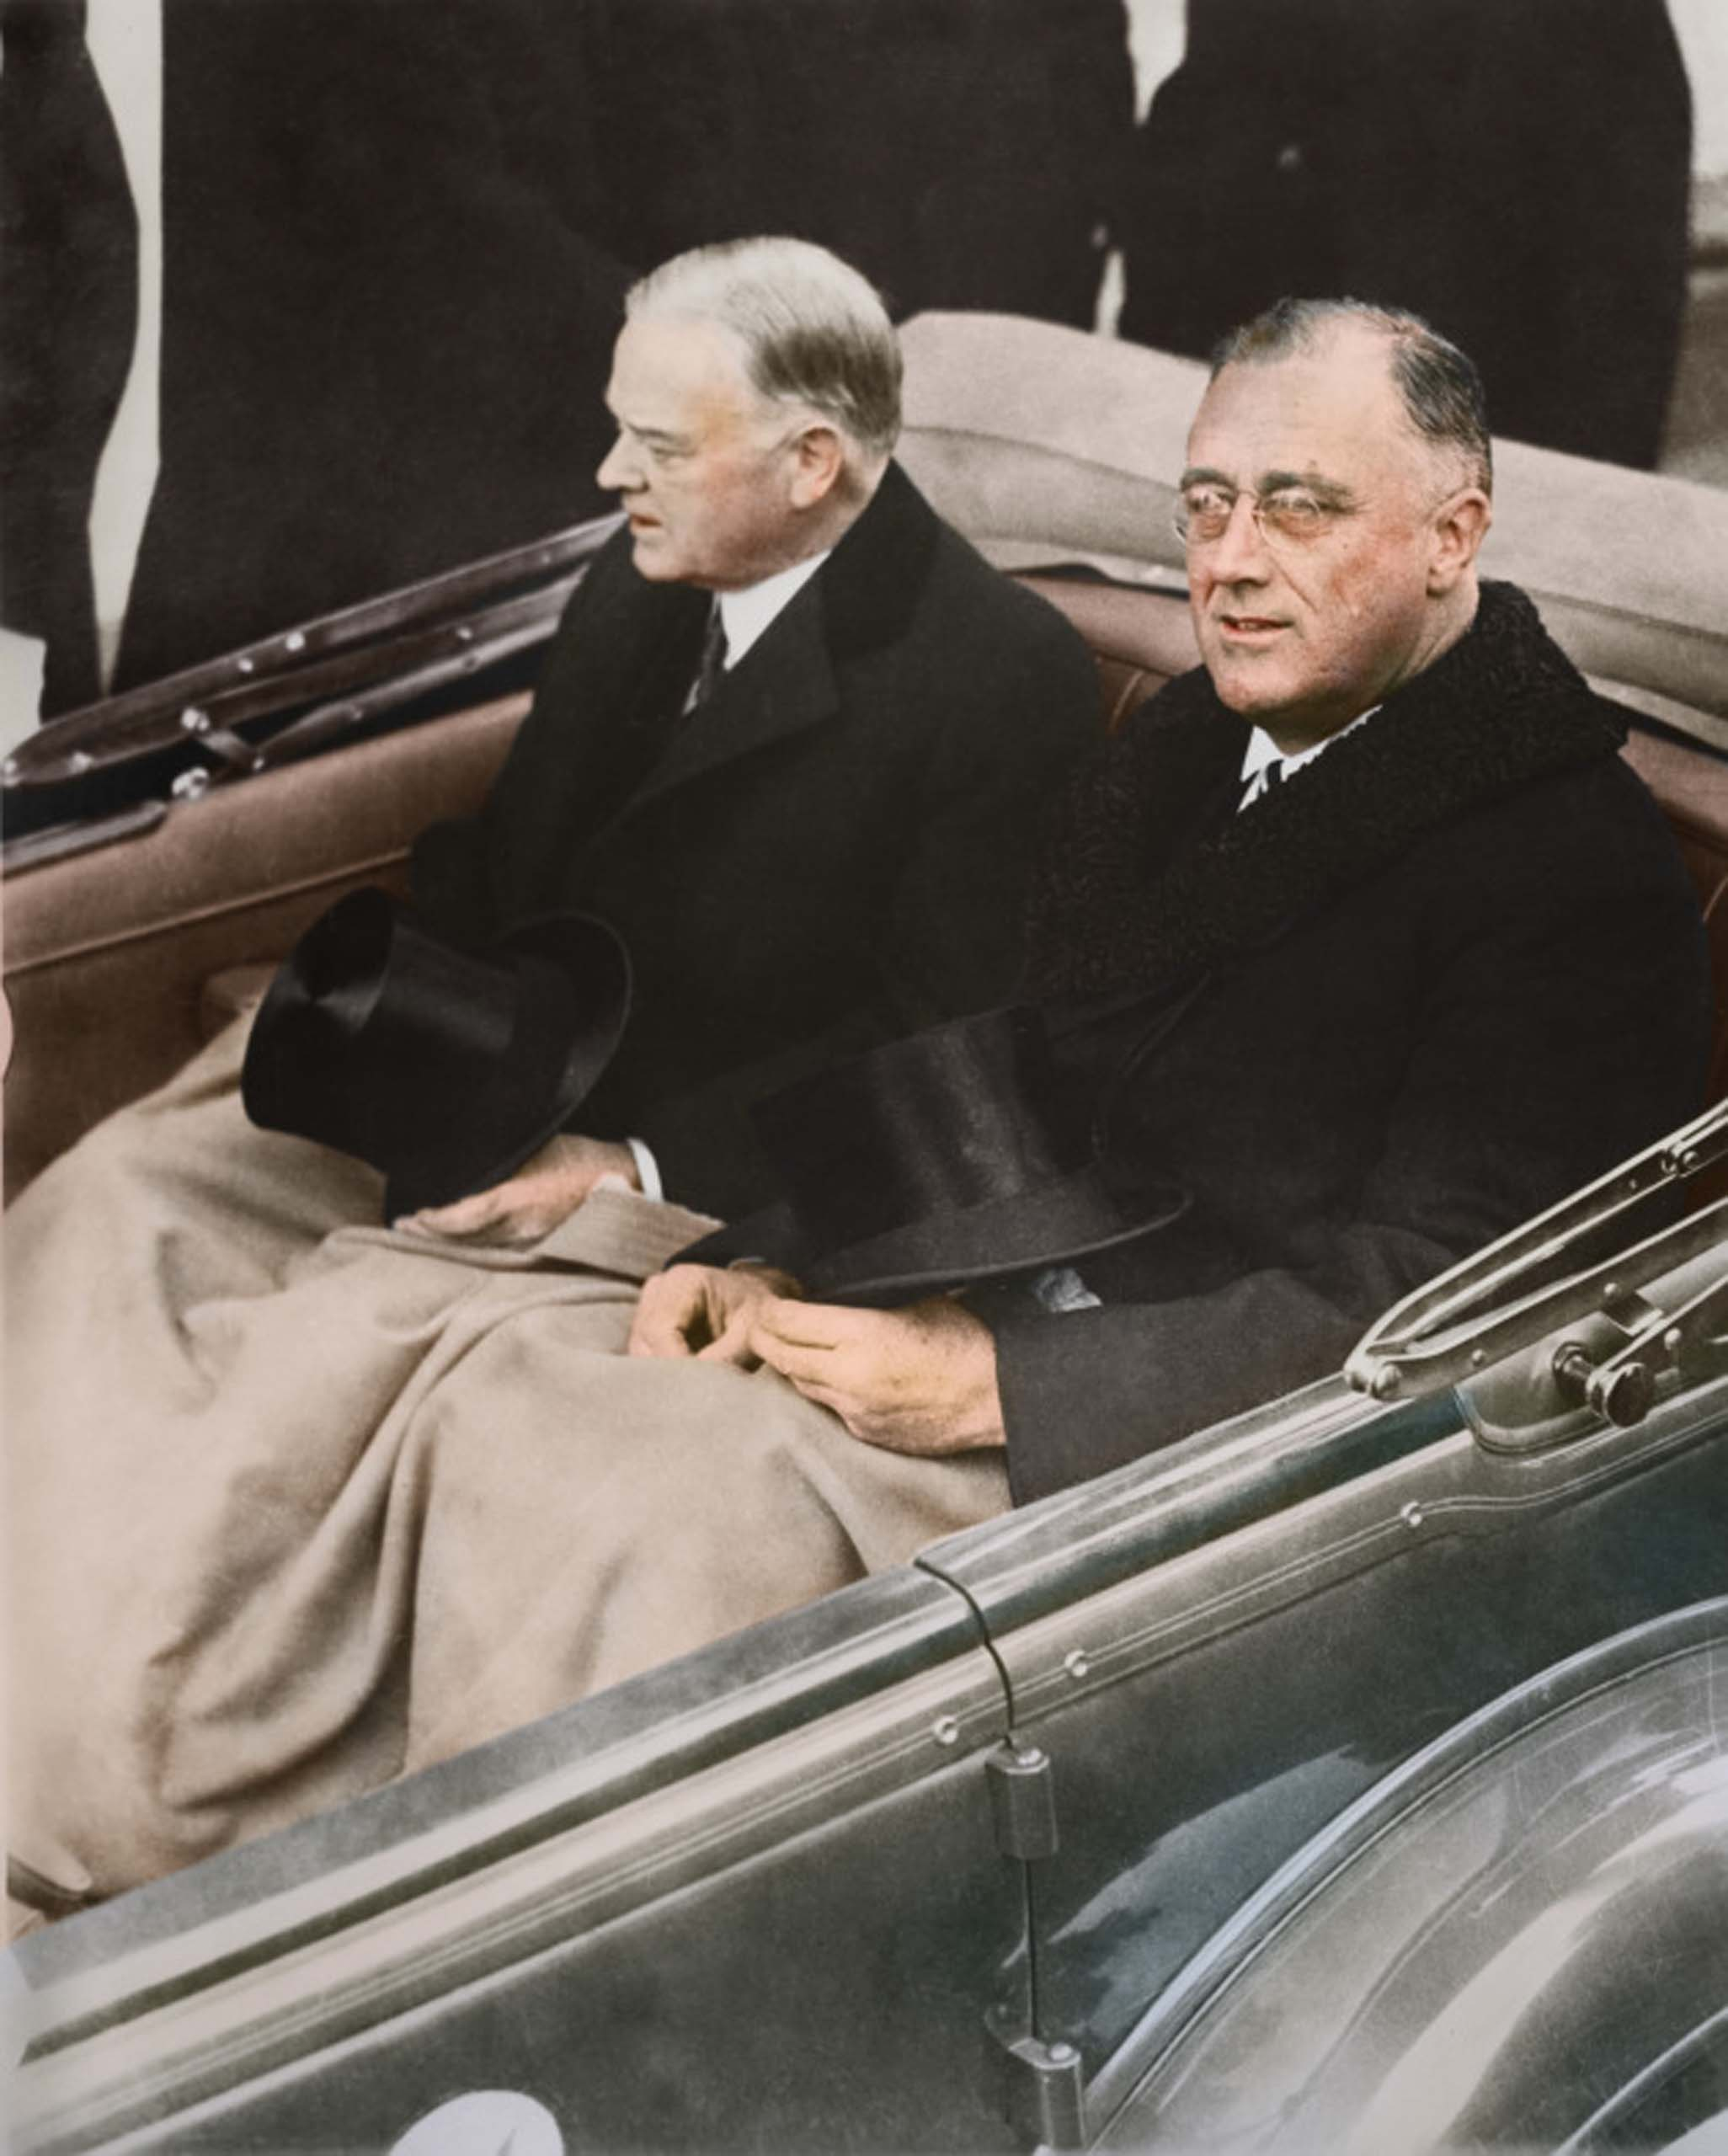 March 4, 1933. Franklin Delano Roosevelt and Herbert Hoover in a convertible automobile on their way to the U.S. Capitol for Roosevelt's inauguration.                                   <i>FDR was ranked #1 on SRI's Survey of U.S. Presidents, holding the top spot in categories like 'Handling of the U.S. Economy,' 'Foreign Policy Accomplishments' and 'Party Leadership.'</i>